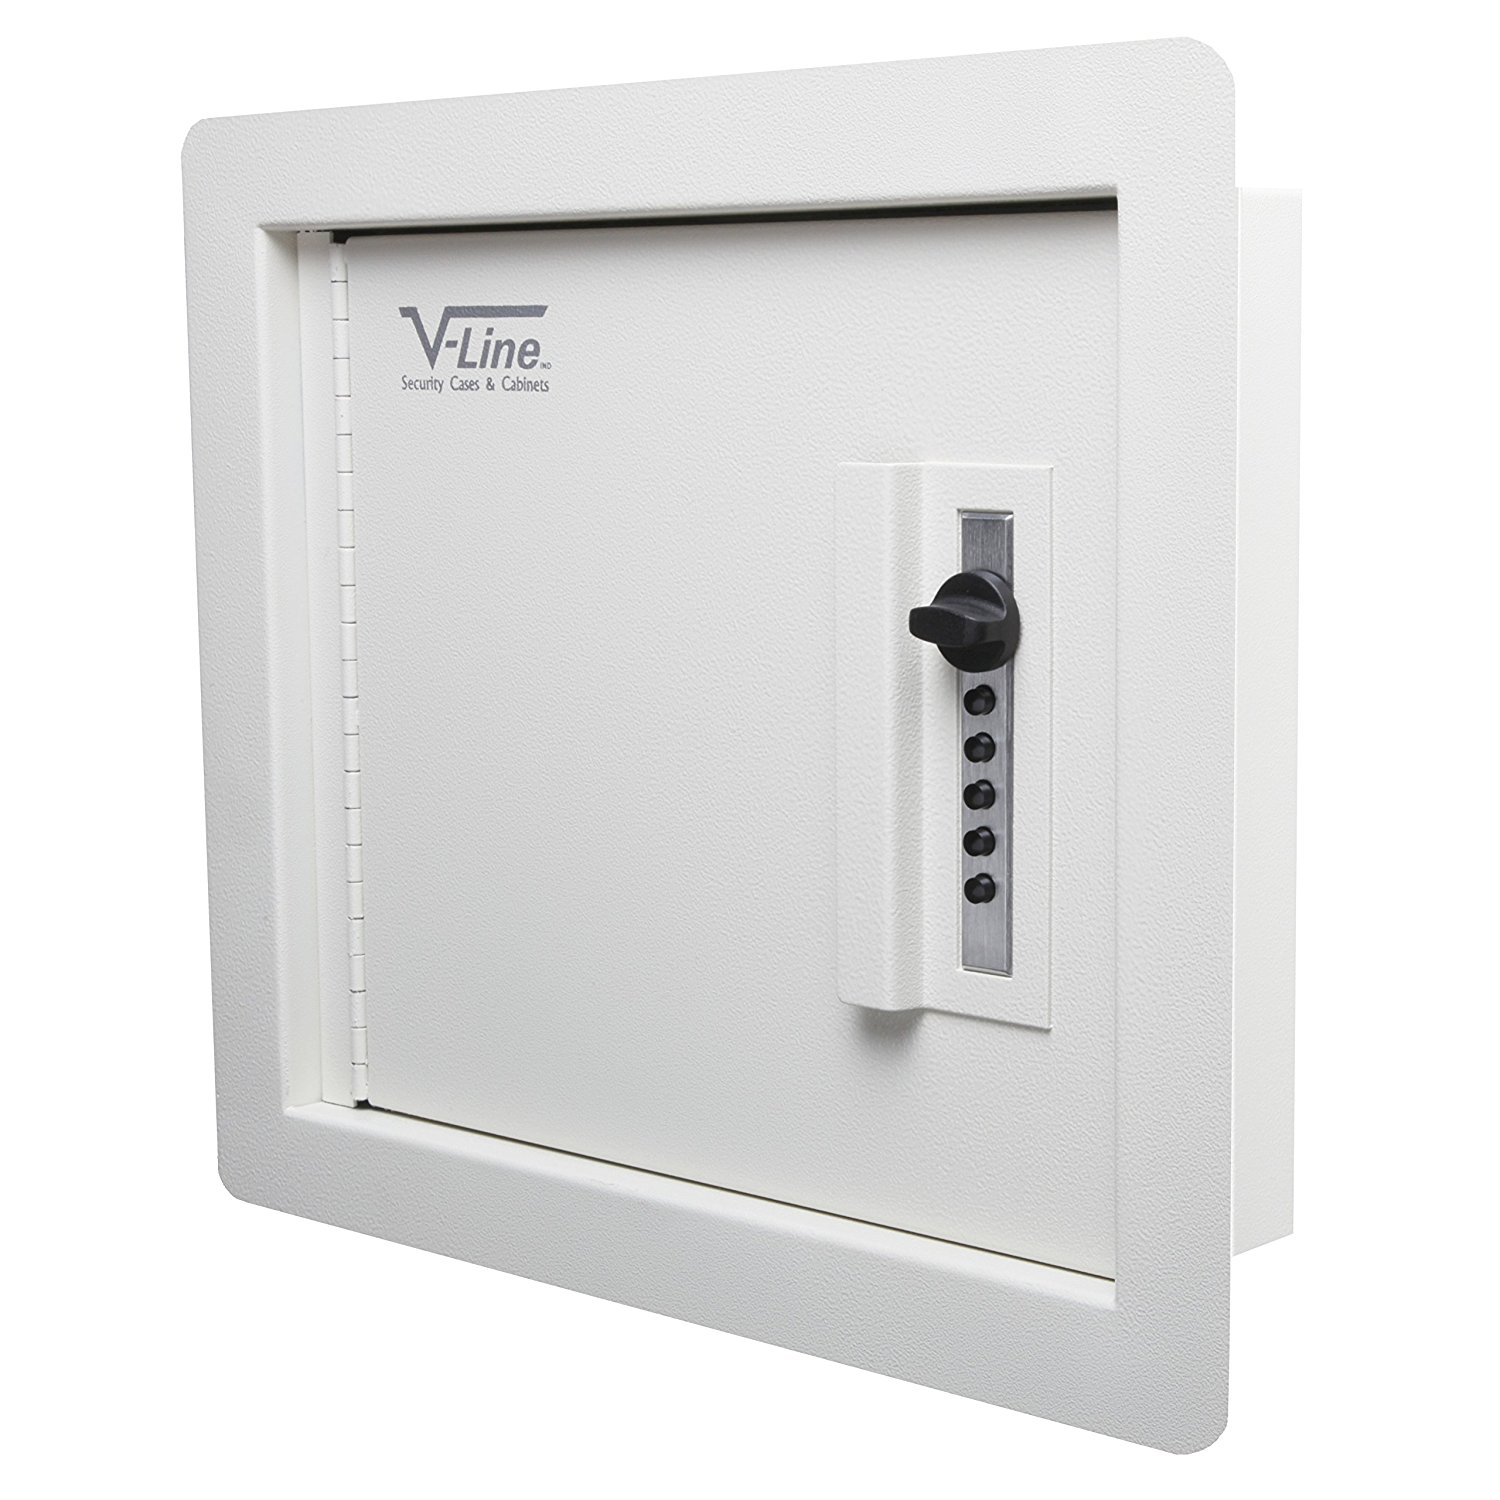 the V-Line Quick Vault Locking Storage for Guns and Valuables is one of the best combination lock gun safe